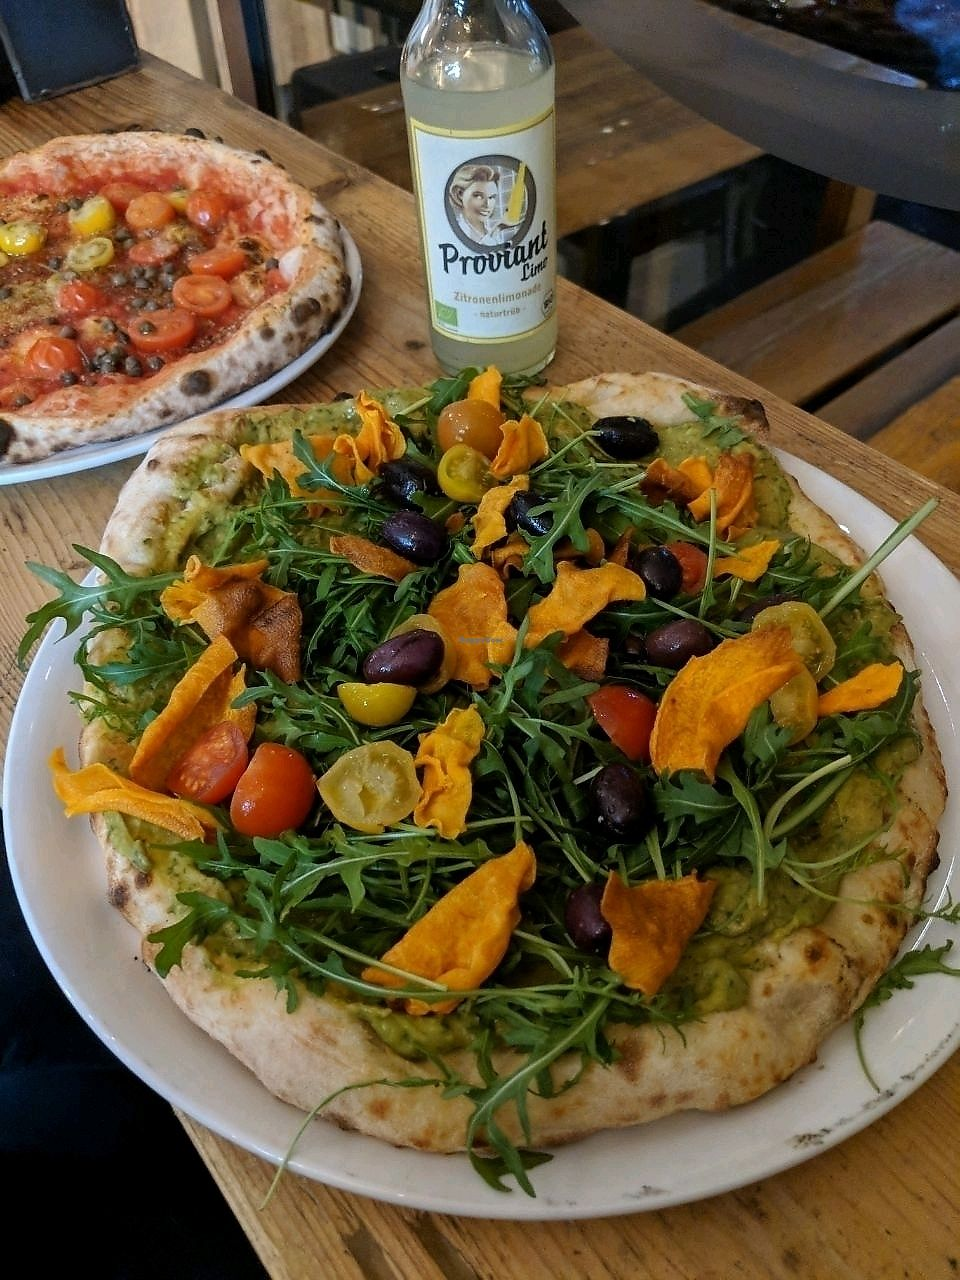 """Photo of 485Grad Pizza  by <a href=""""/members/profile/uschiverena"""">uschiverena</a> <br/>Guac, olives, tomatoes, rocket and sweet potato chips <br/> March 22, 2018  - <a href='/contact/abuse/image/76638/374533'>Report</a>"""